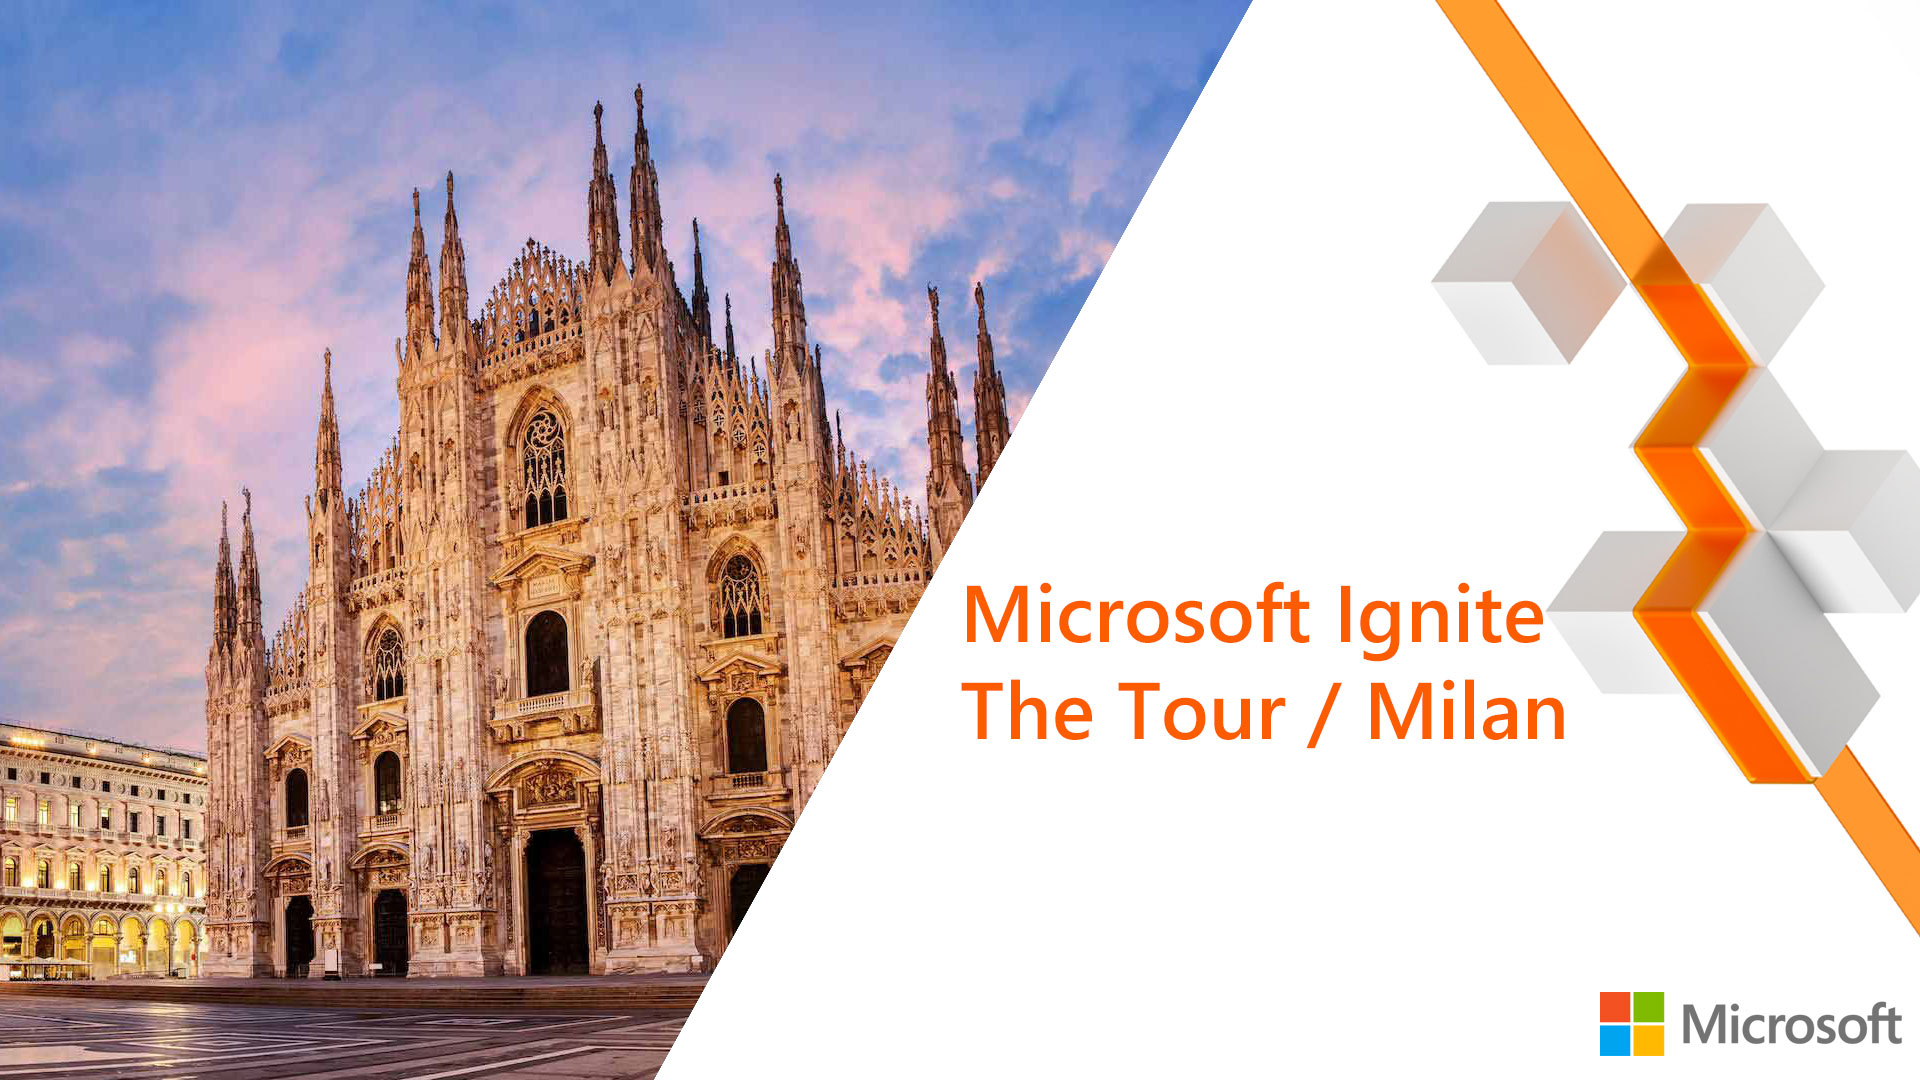 Microsoft Ignite The Tour Milan